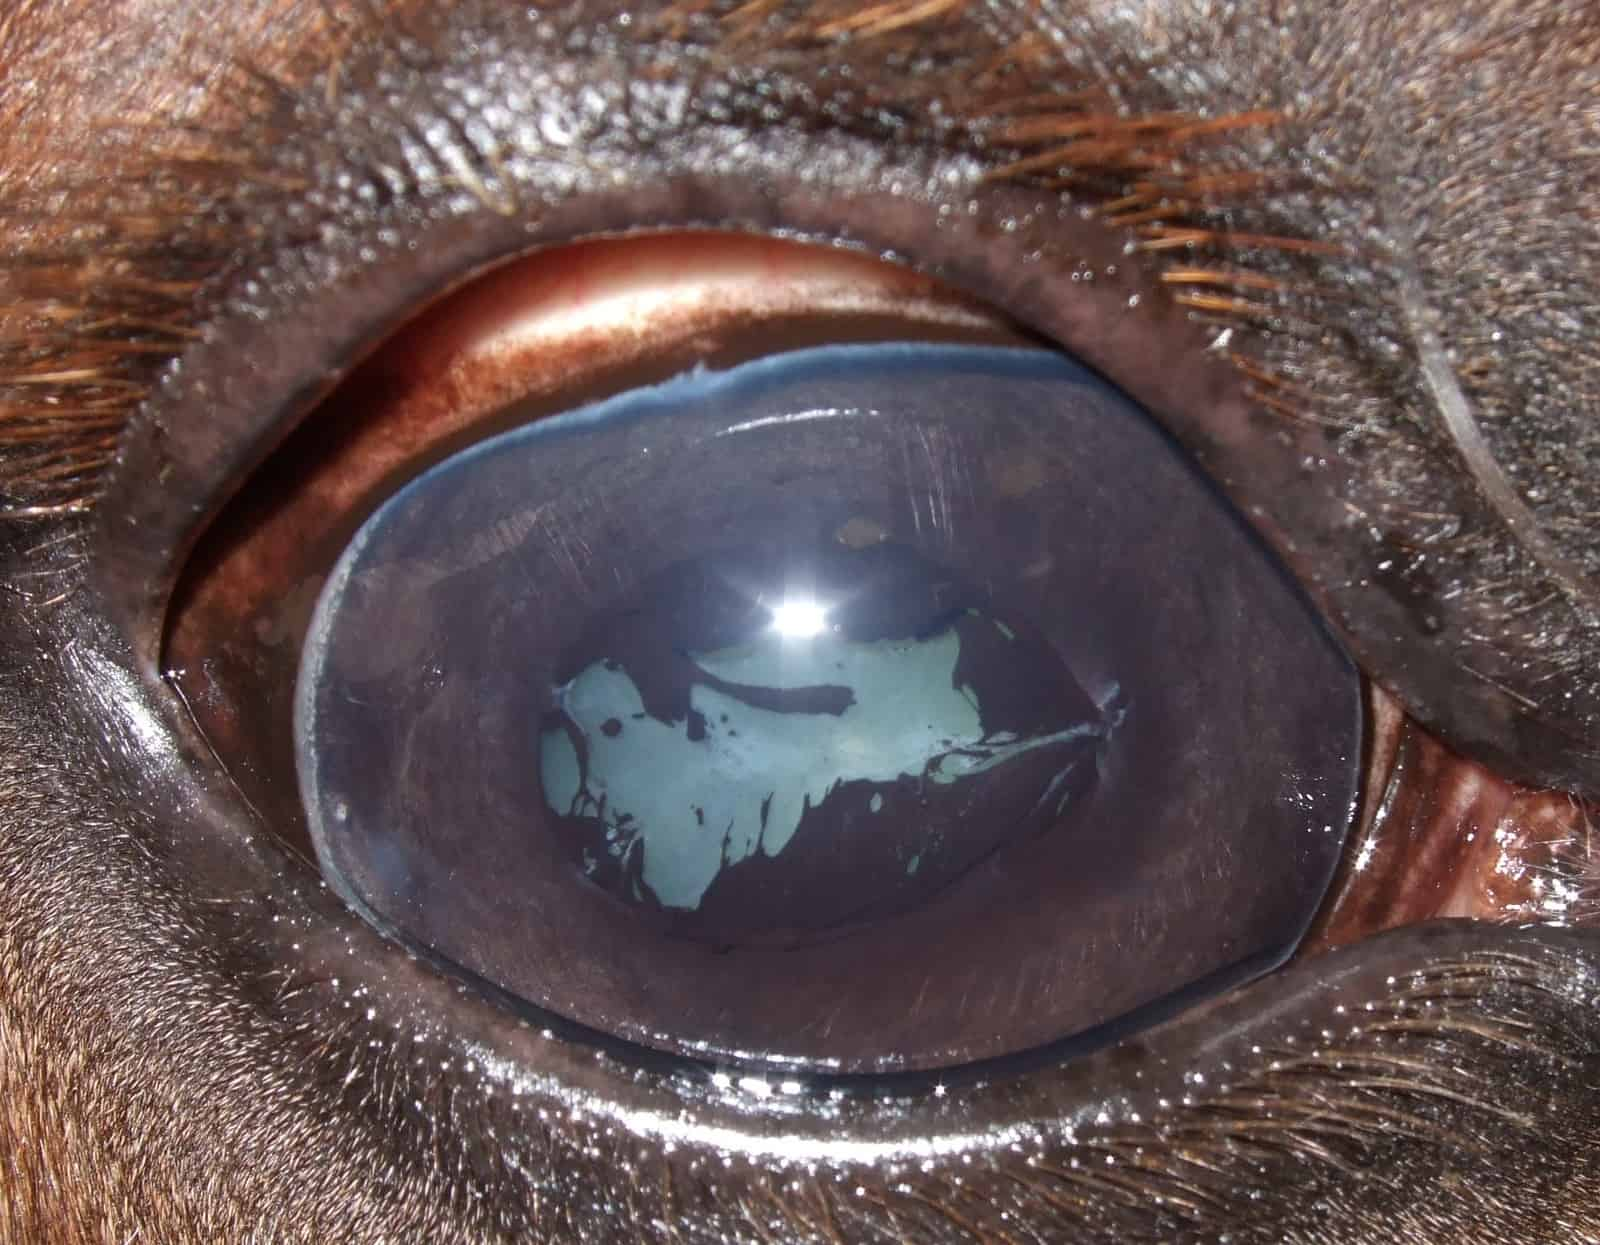 Equine Recurrent Uveitis: The Latest – The Horse